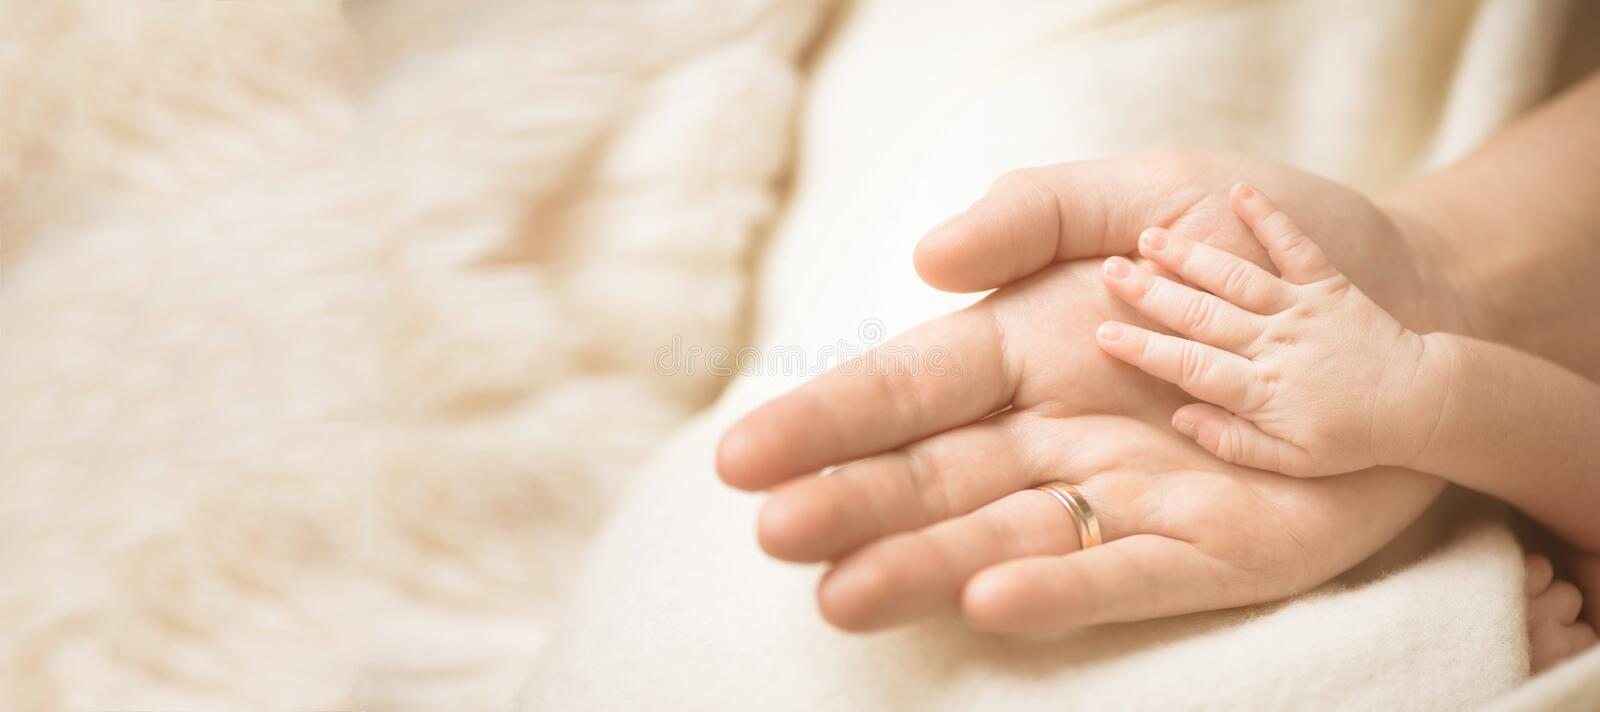 Female hand holding her newborn baby`s hand. Mom with her child. Maternity, family, birth concept. Copy space for your stock photos